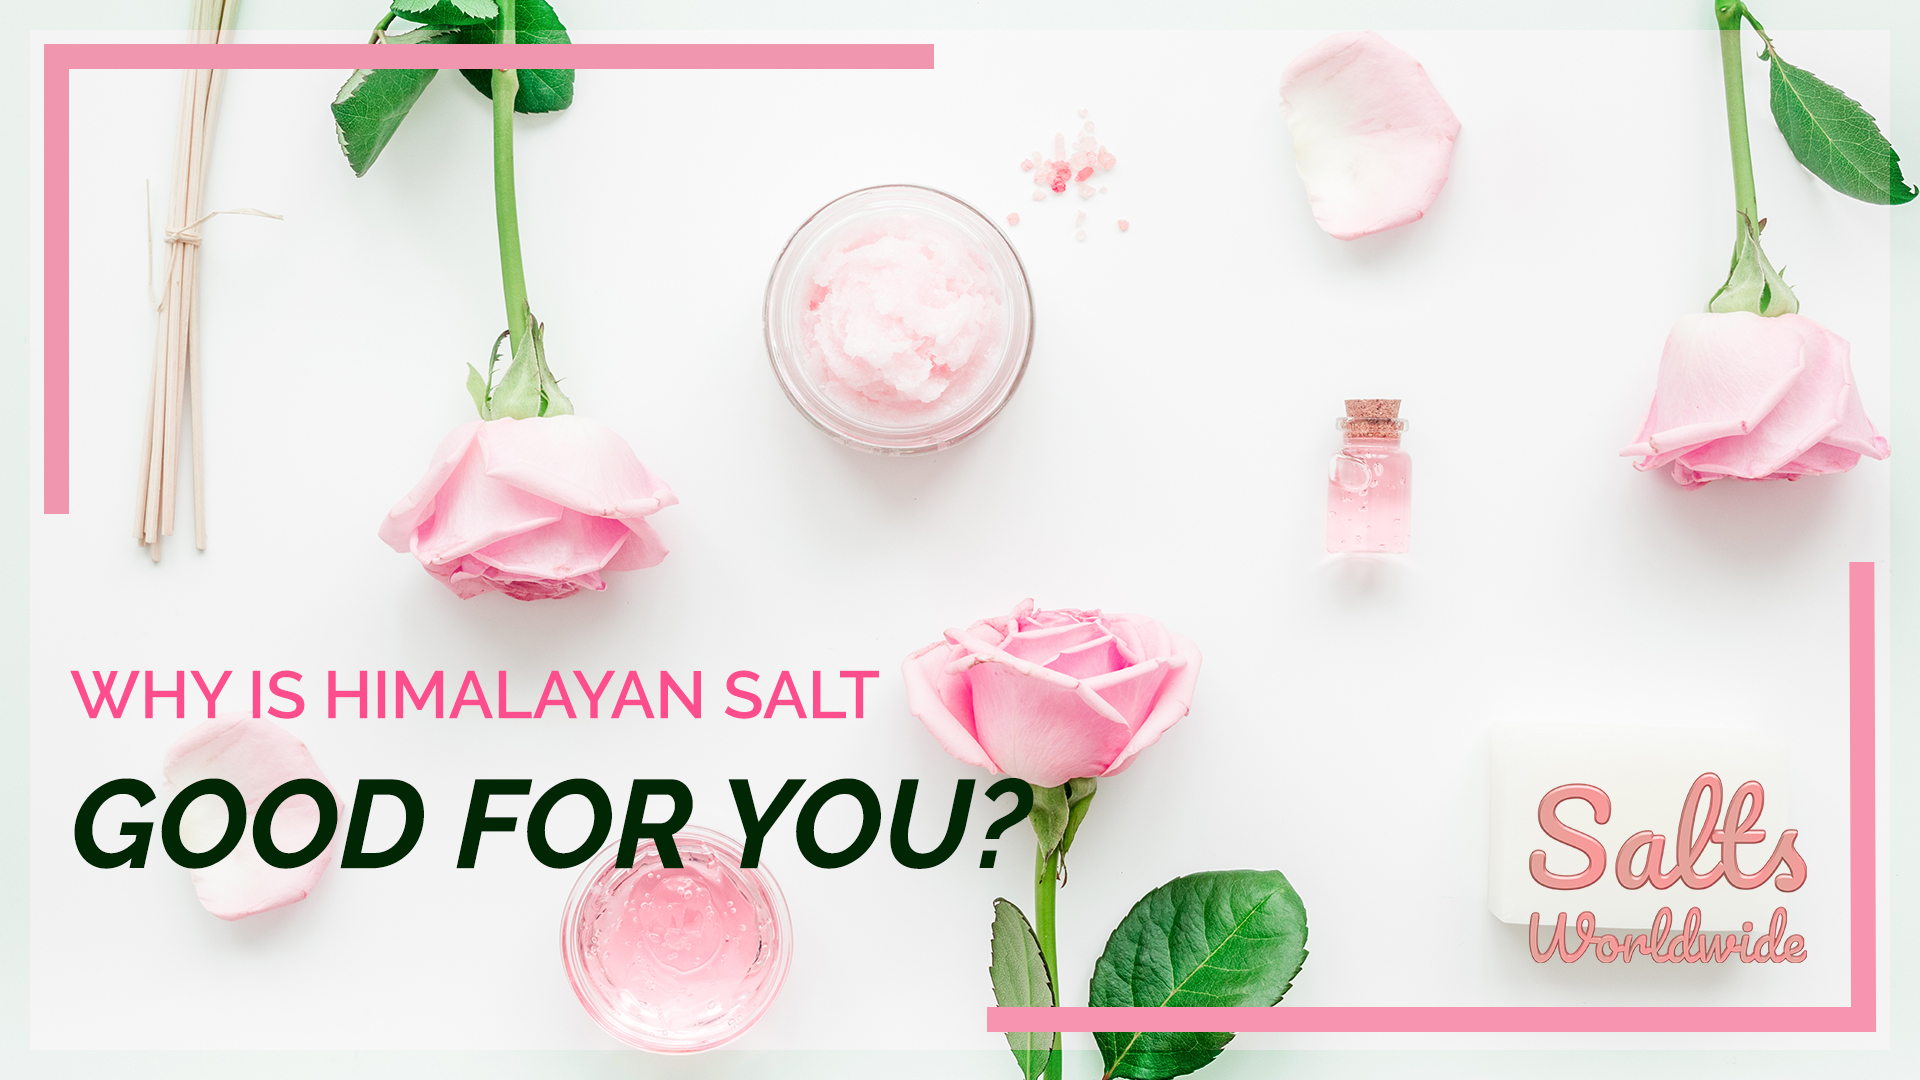 WHY IS HIMALAYAN SALT GOOD FOR YOU - featured image